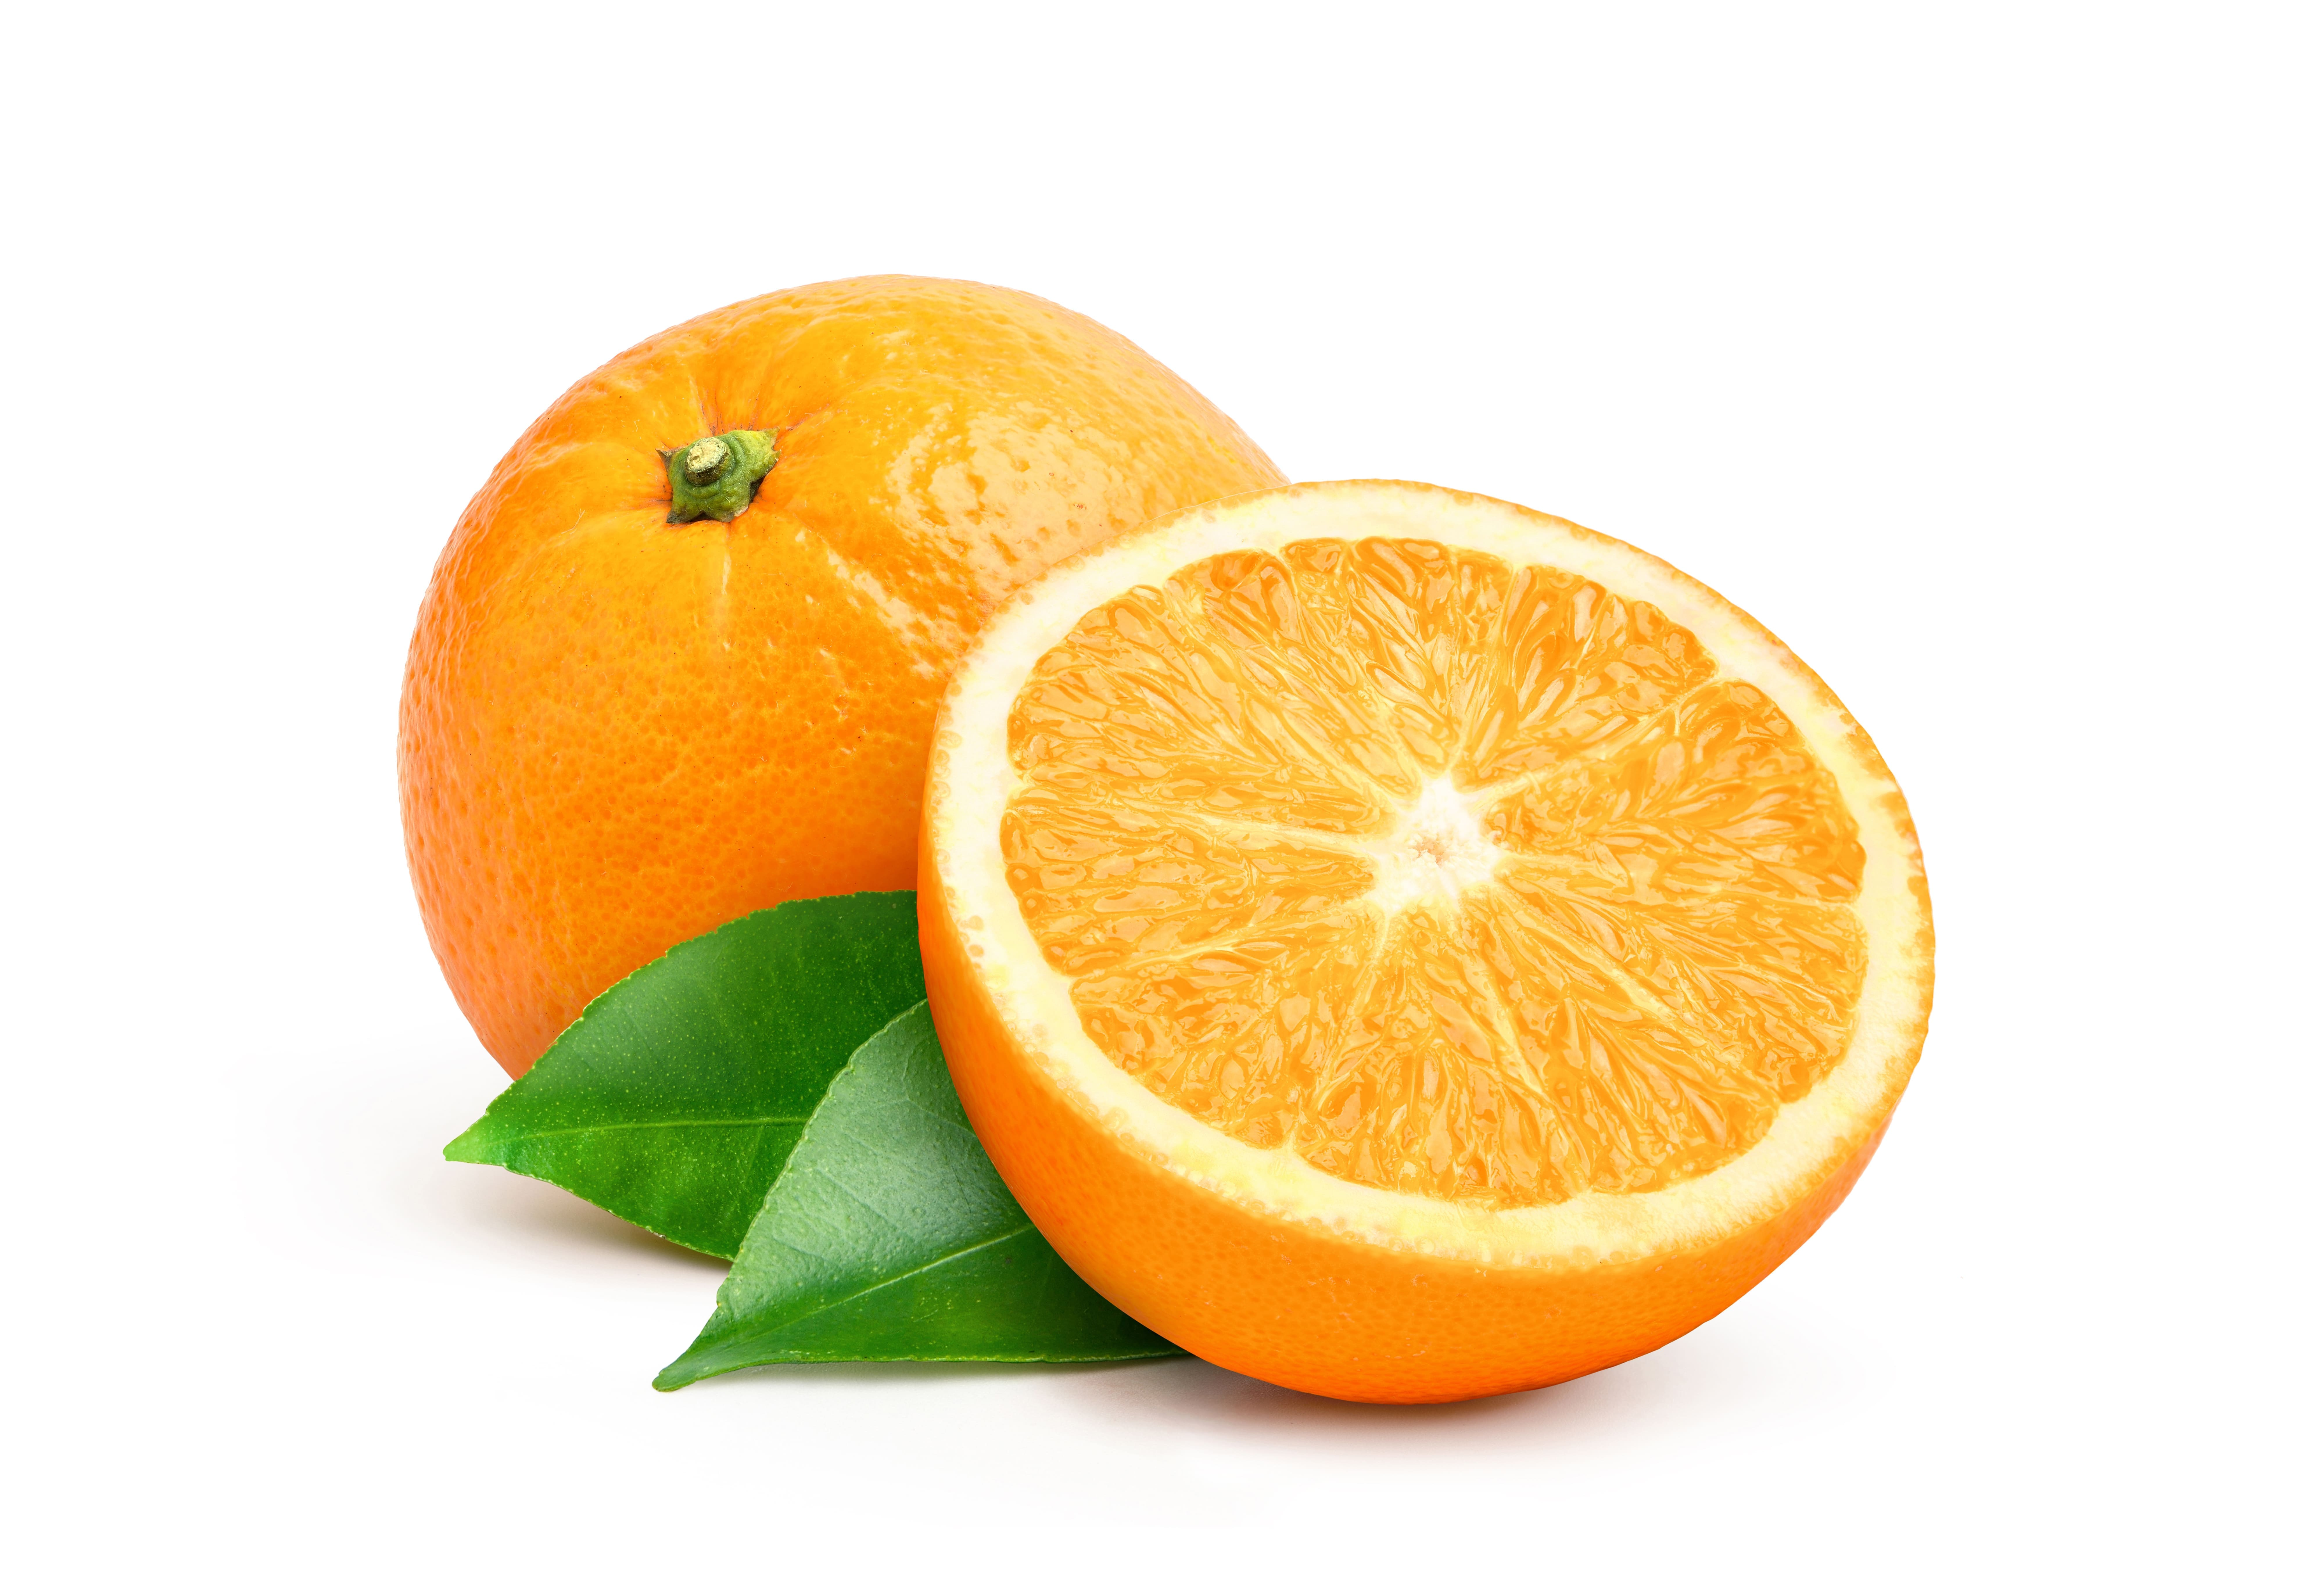 natural valecia orange fruit with cut in half and green leaves isolated on white background 1 1 1